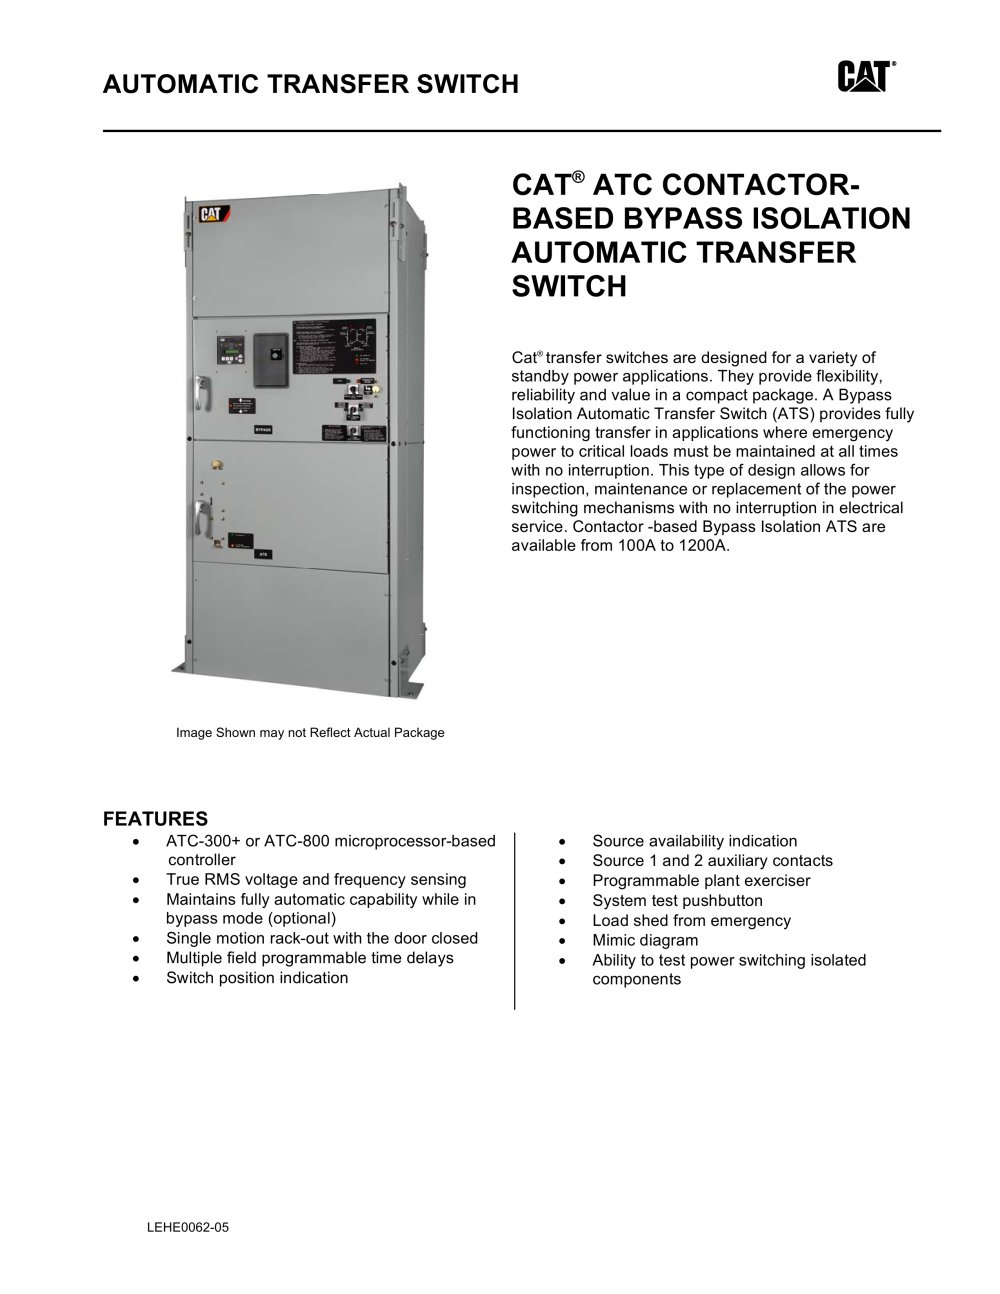 Atc Contactor Based Bypass Isolation Transfer Switch Caterpillar Description Wiring Diagram Of Automatic For Dummies 1 5 Pages